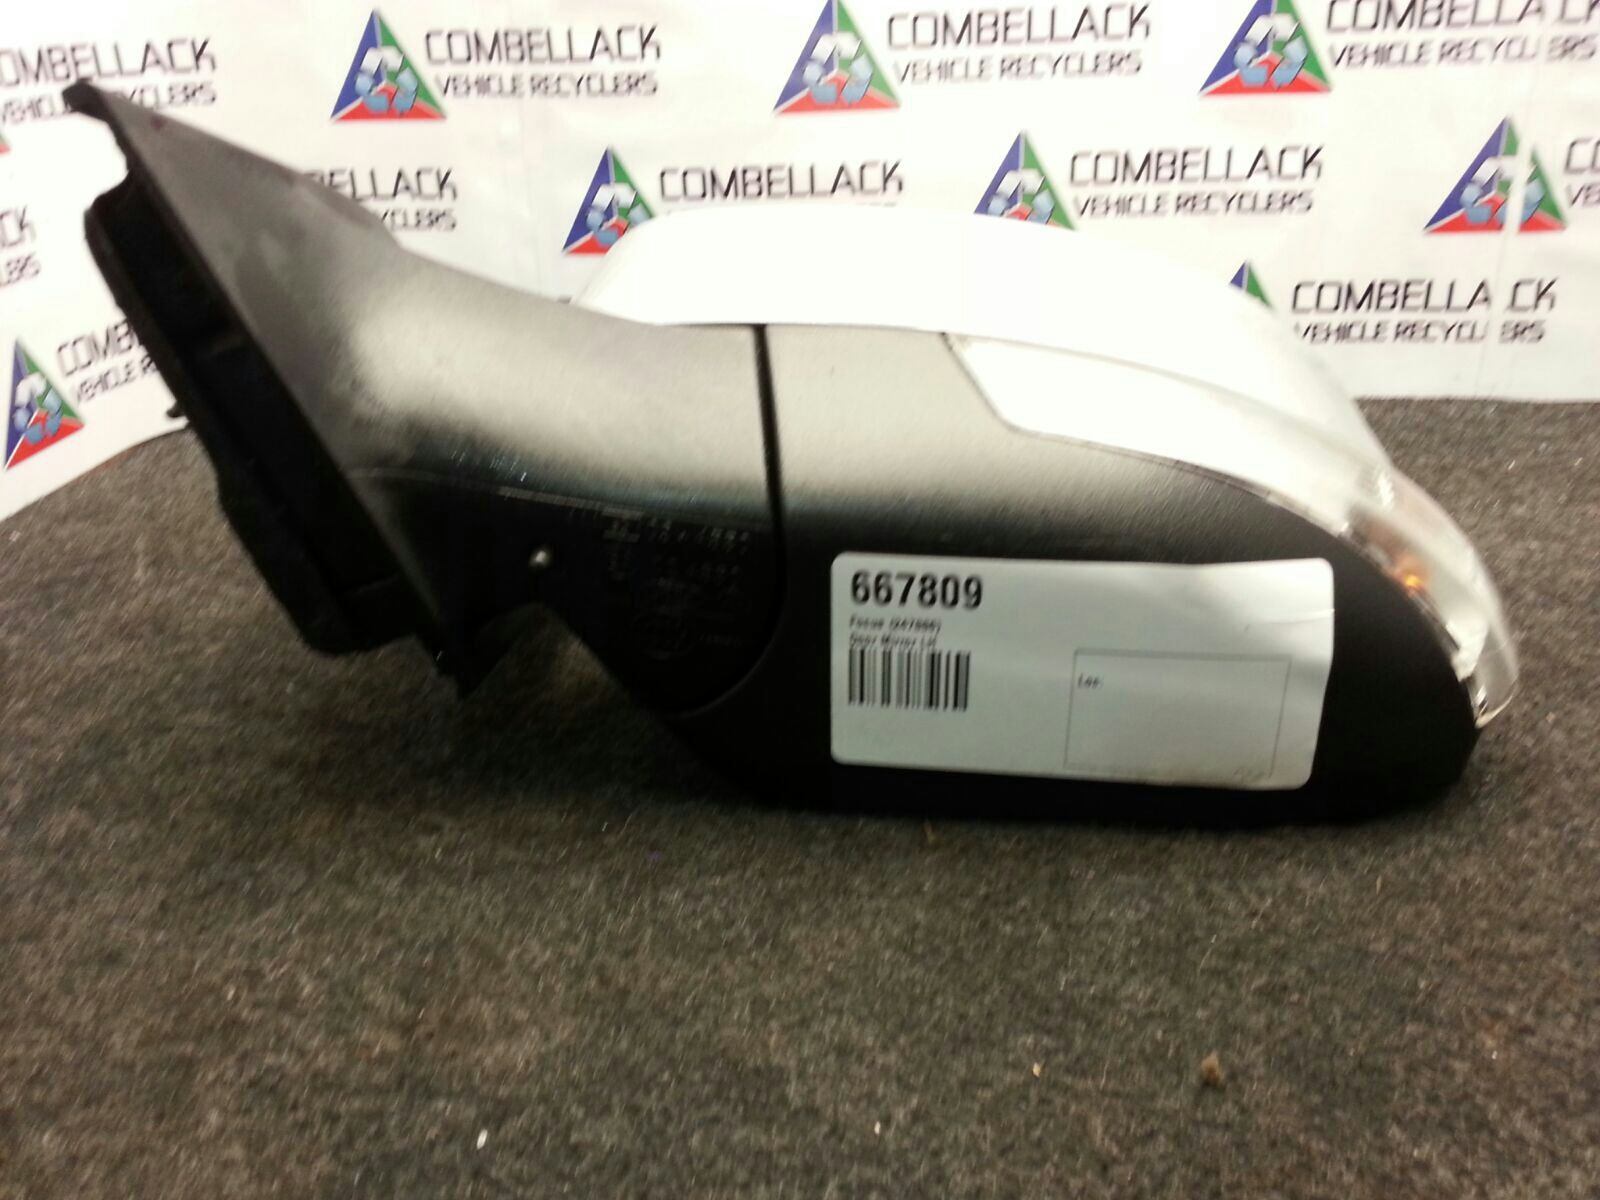 Ford Focus 2011 To 2014 Zetec Tdci Door Mirror Lh Used And Spare Exhaust Parts At Combellack Vehicle Recyclers